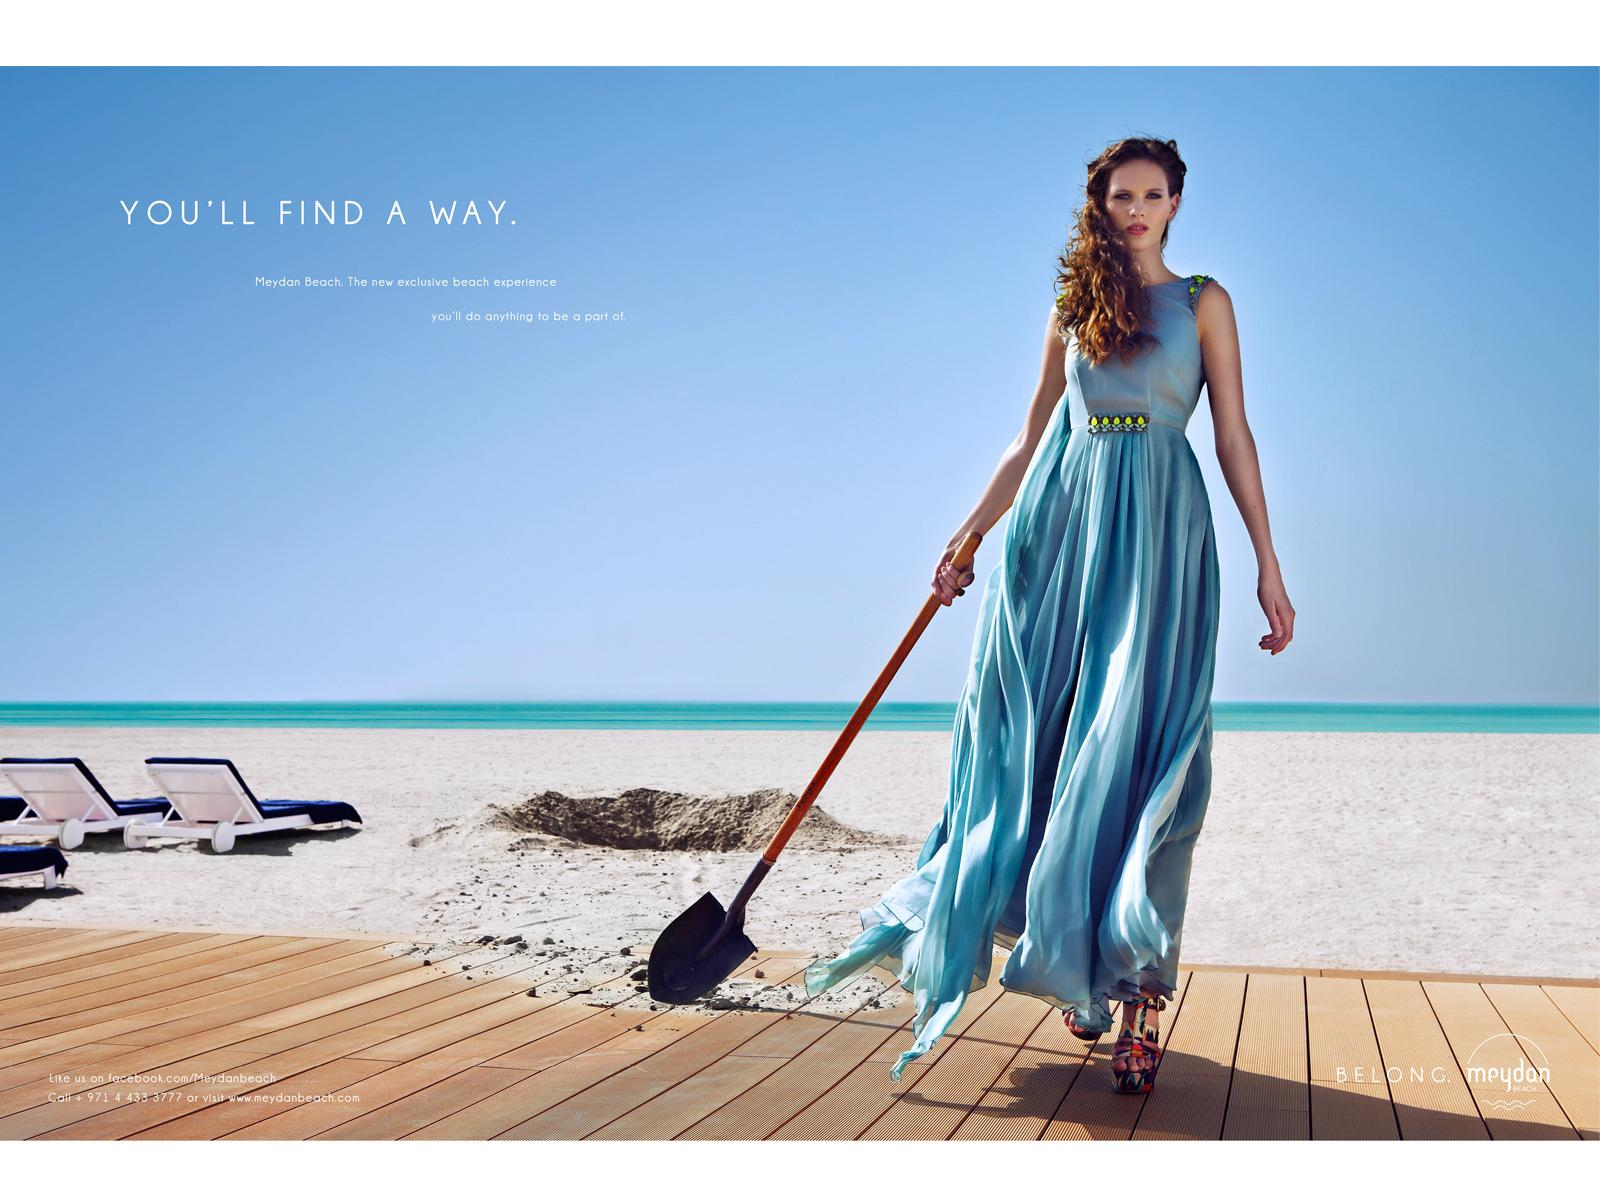 Meydan Beach Print Ad -  You'll find a way, 2